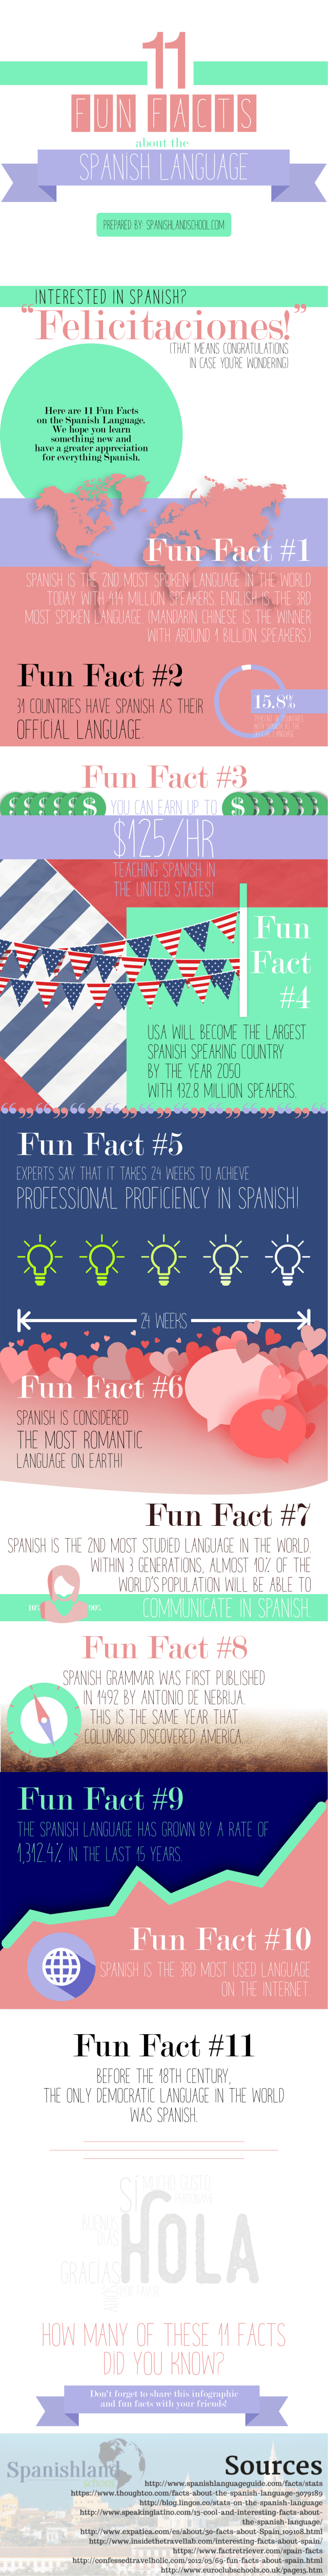 Fun Facts About Spanish - Infographic